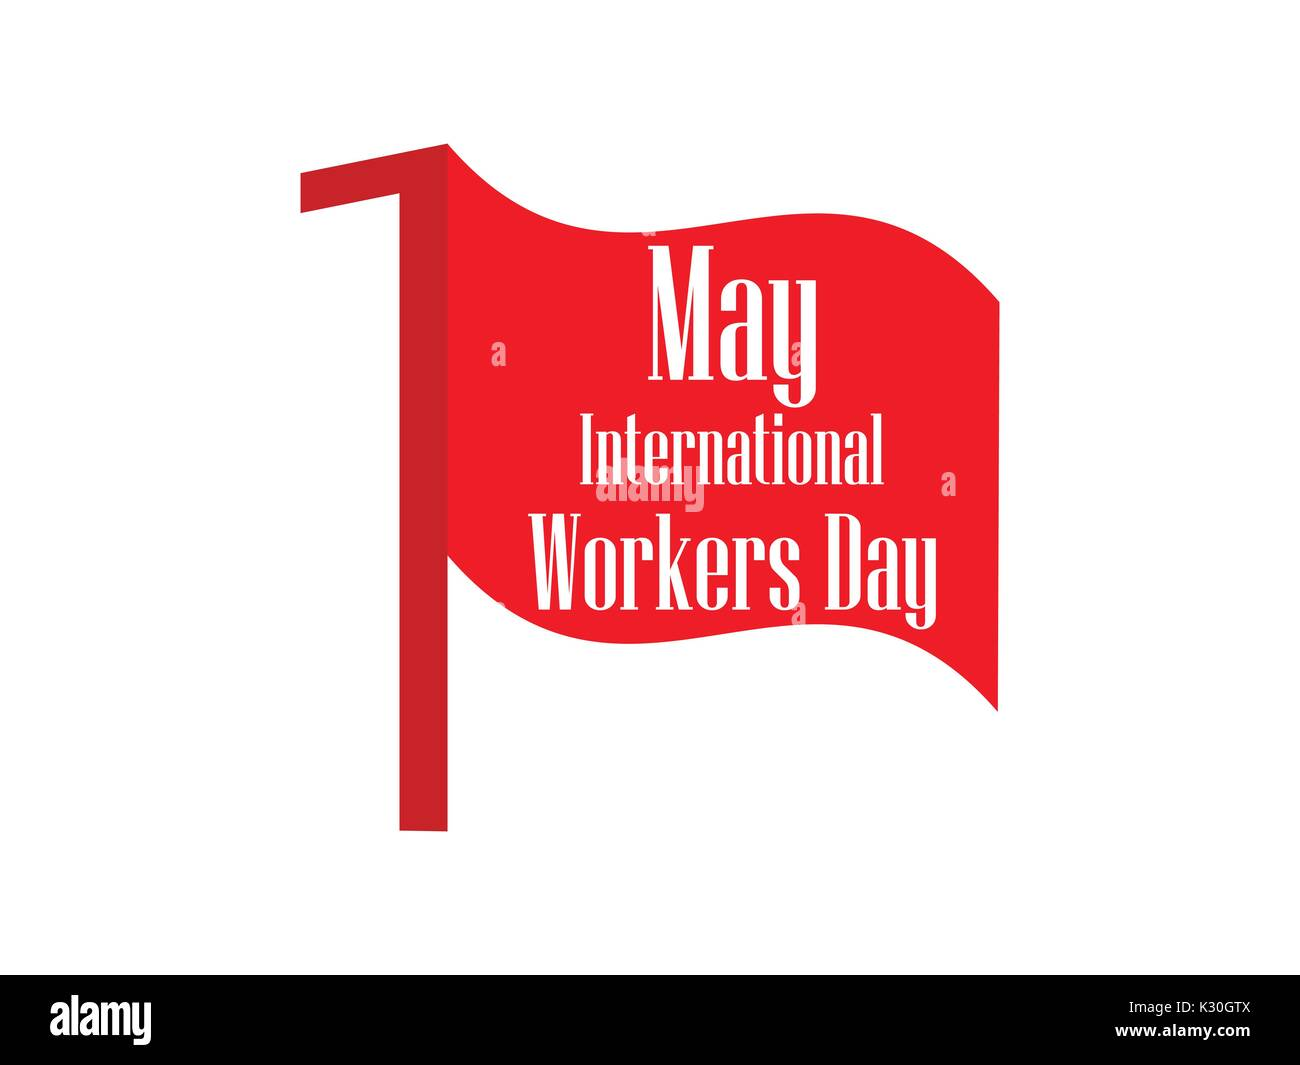 International Workers Day. Labour Day 1st of May. Red flag. Vector illustration - Stock Vector